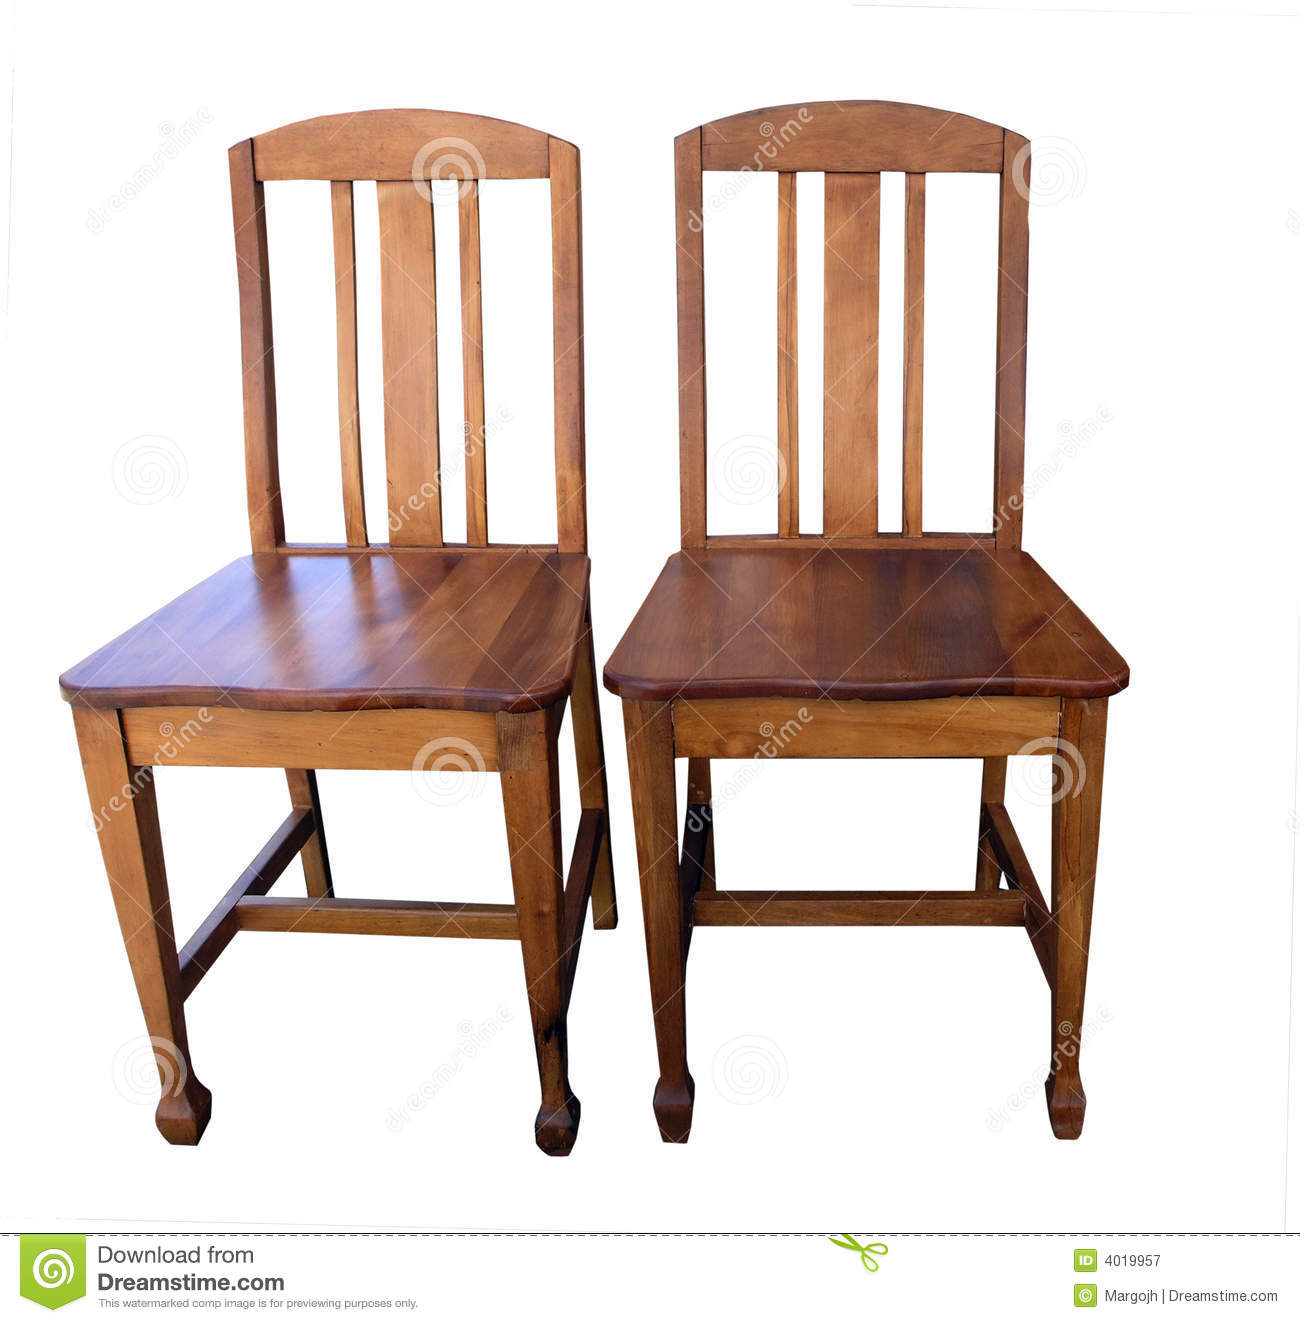 Antique wooden chairs royalty free stock photography image 4019957